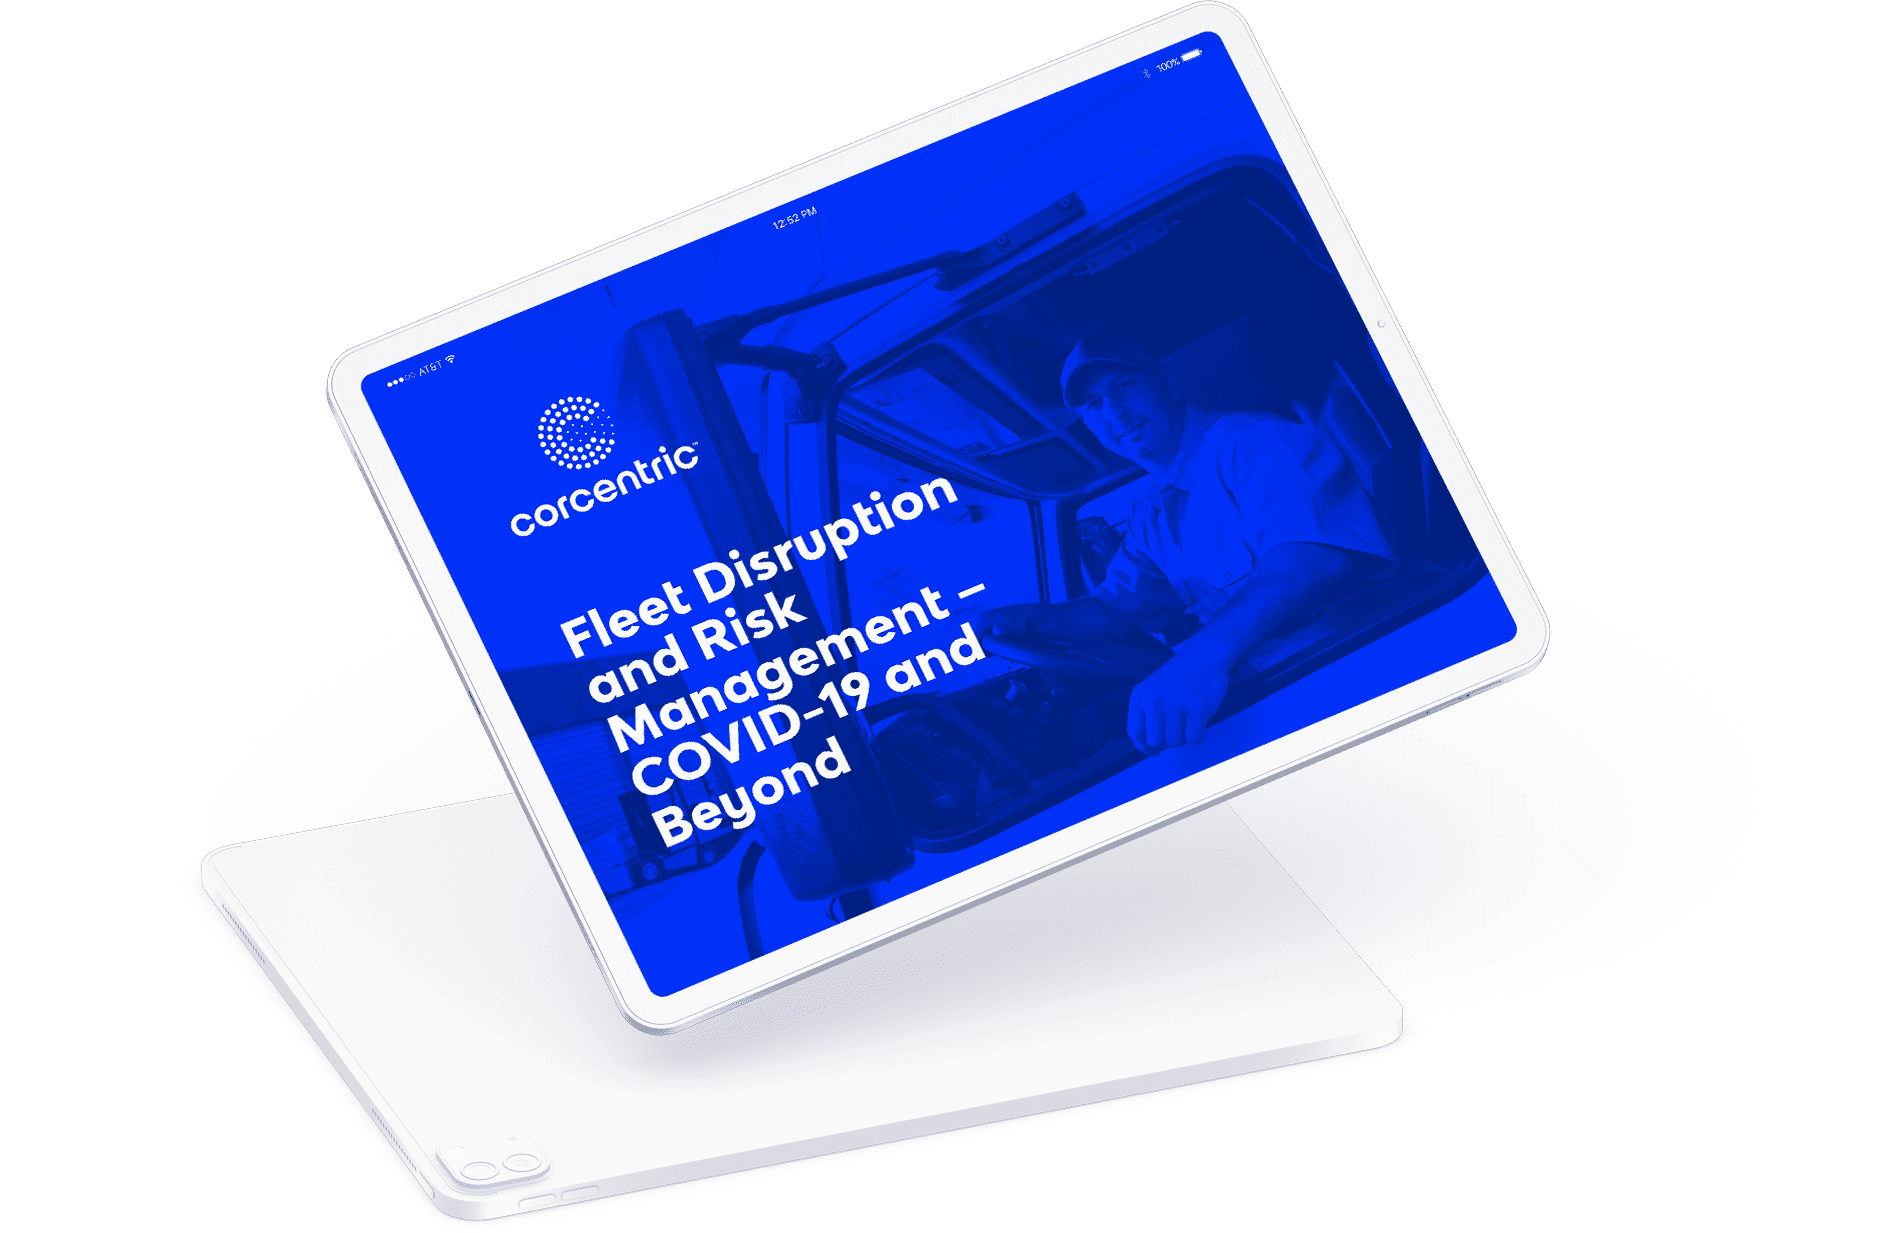 webinar-fleet-disruption-and-risk-management-covid-19-and-beyond-asset